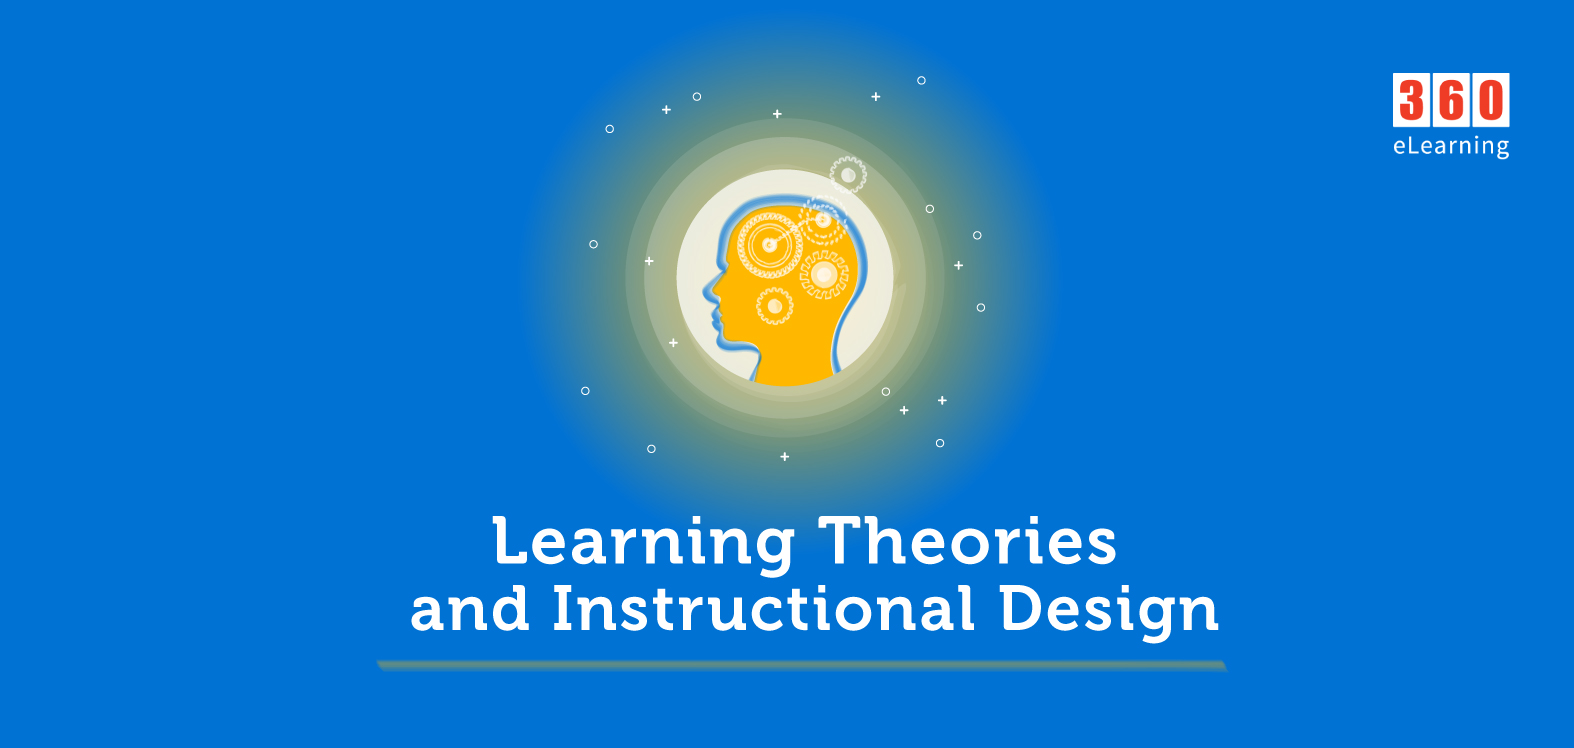 Learning Theories And Instructional Design 360elearning Blog